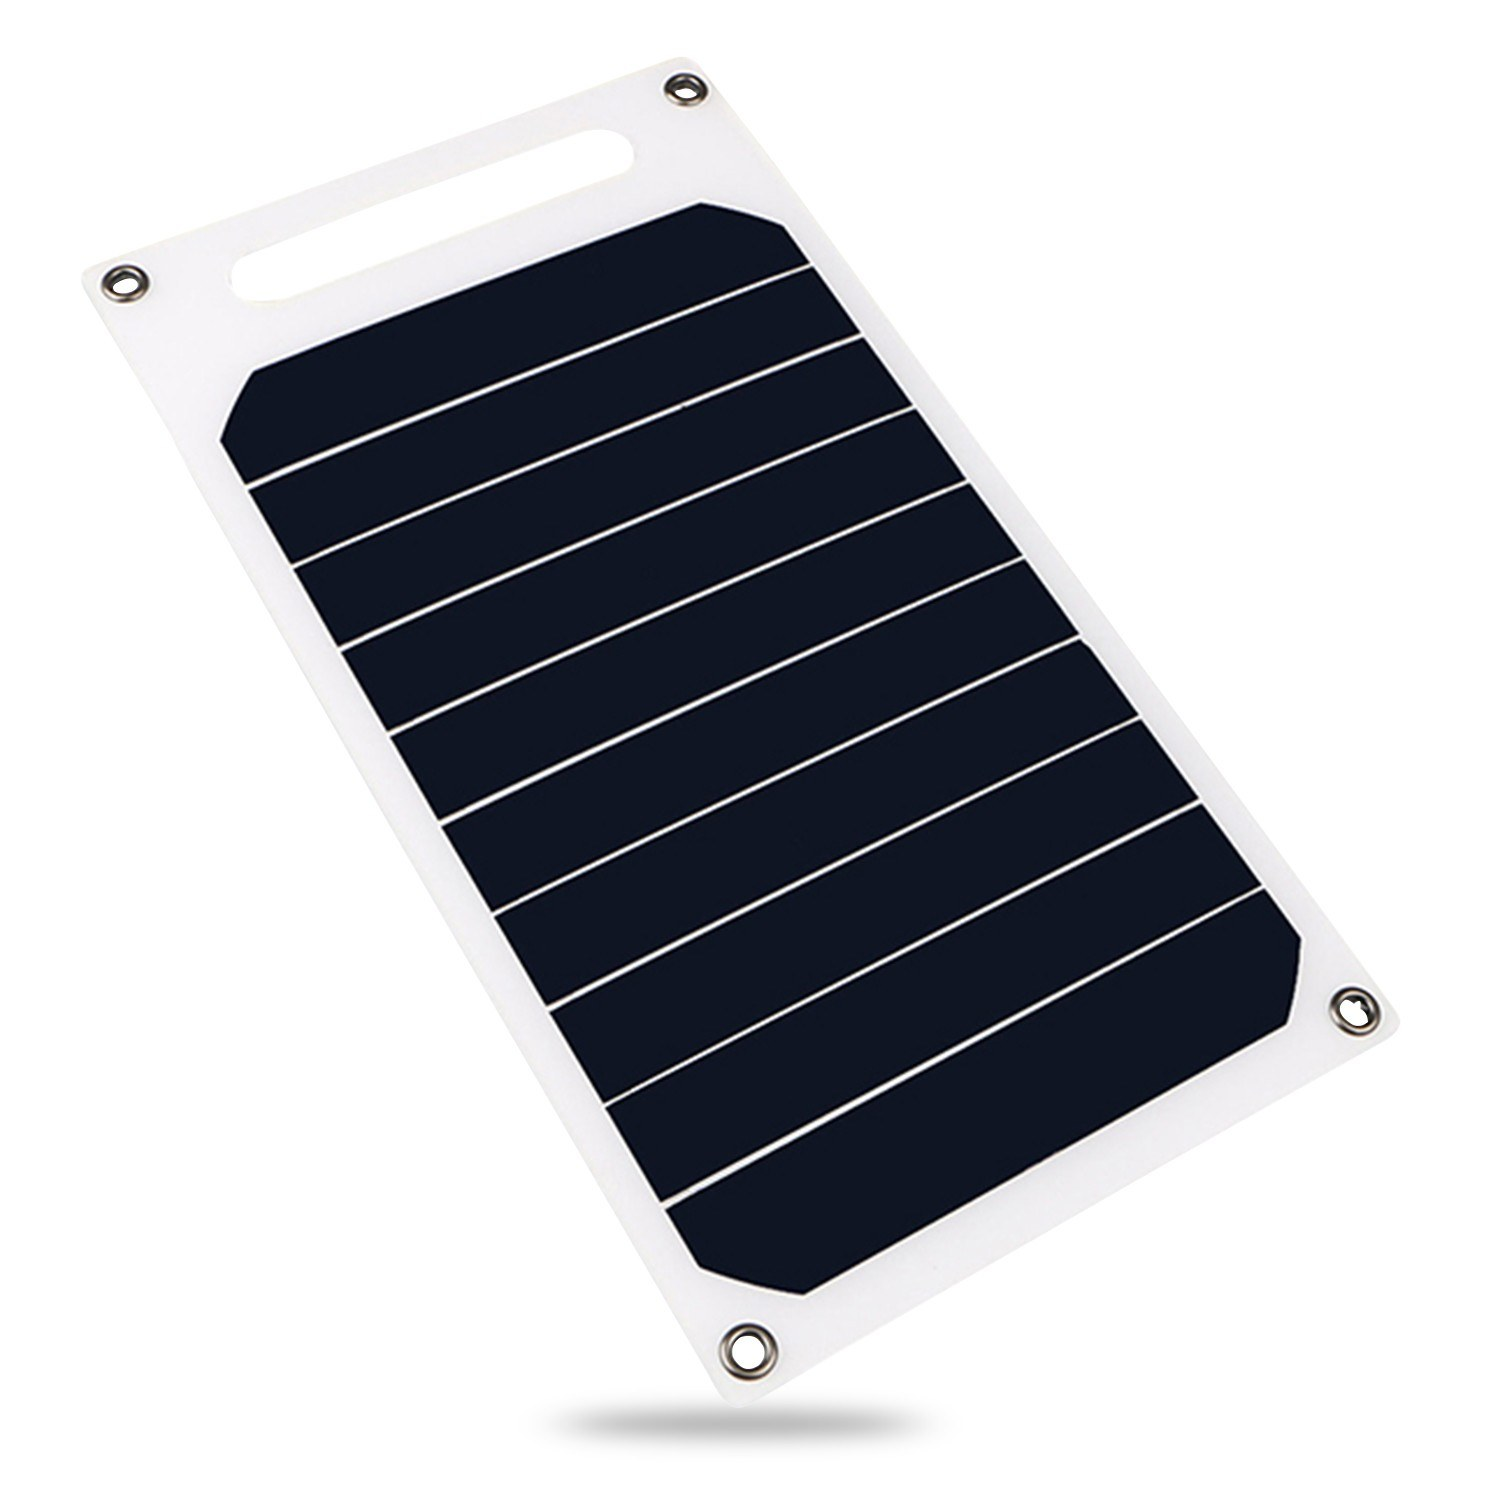 6W 5V Solar Panel with USB Port Monocrystalline Silicon Solar Cell for Outdoor Camping Climbing Hiking Travel Compatible for iPhone Smartphones